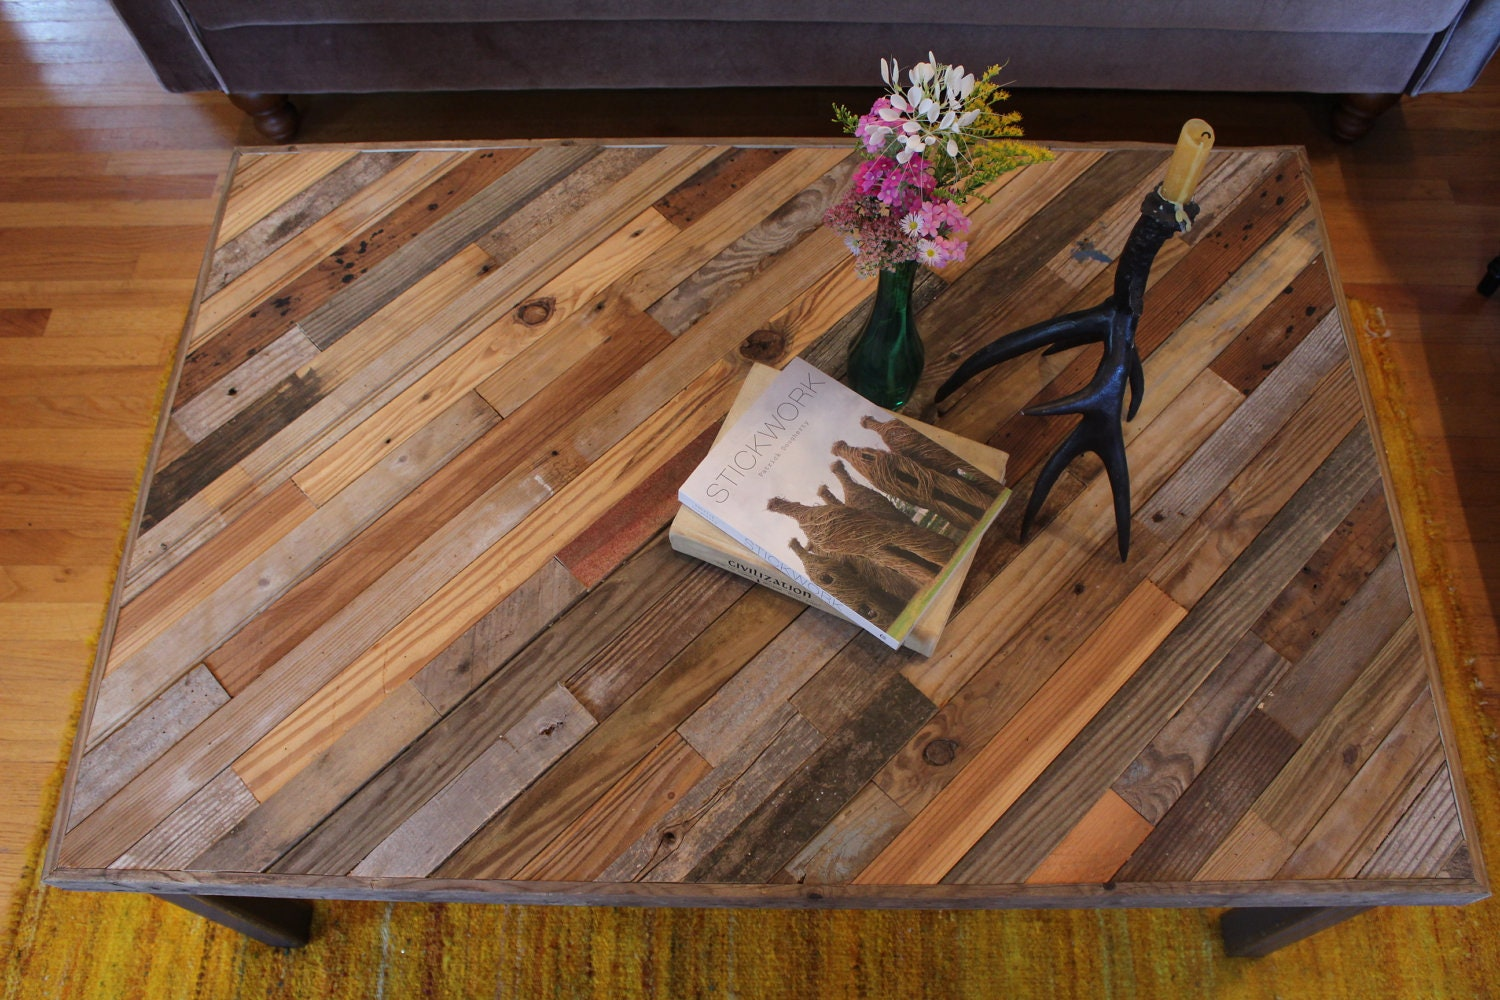 The Best 20 Diy Pallet Coffee Table Projects for Your Living Room ...